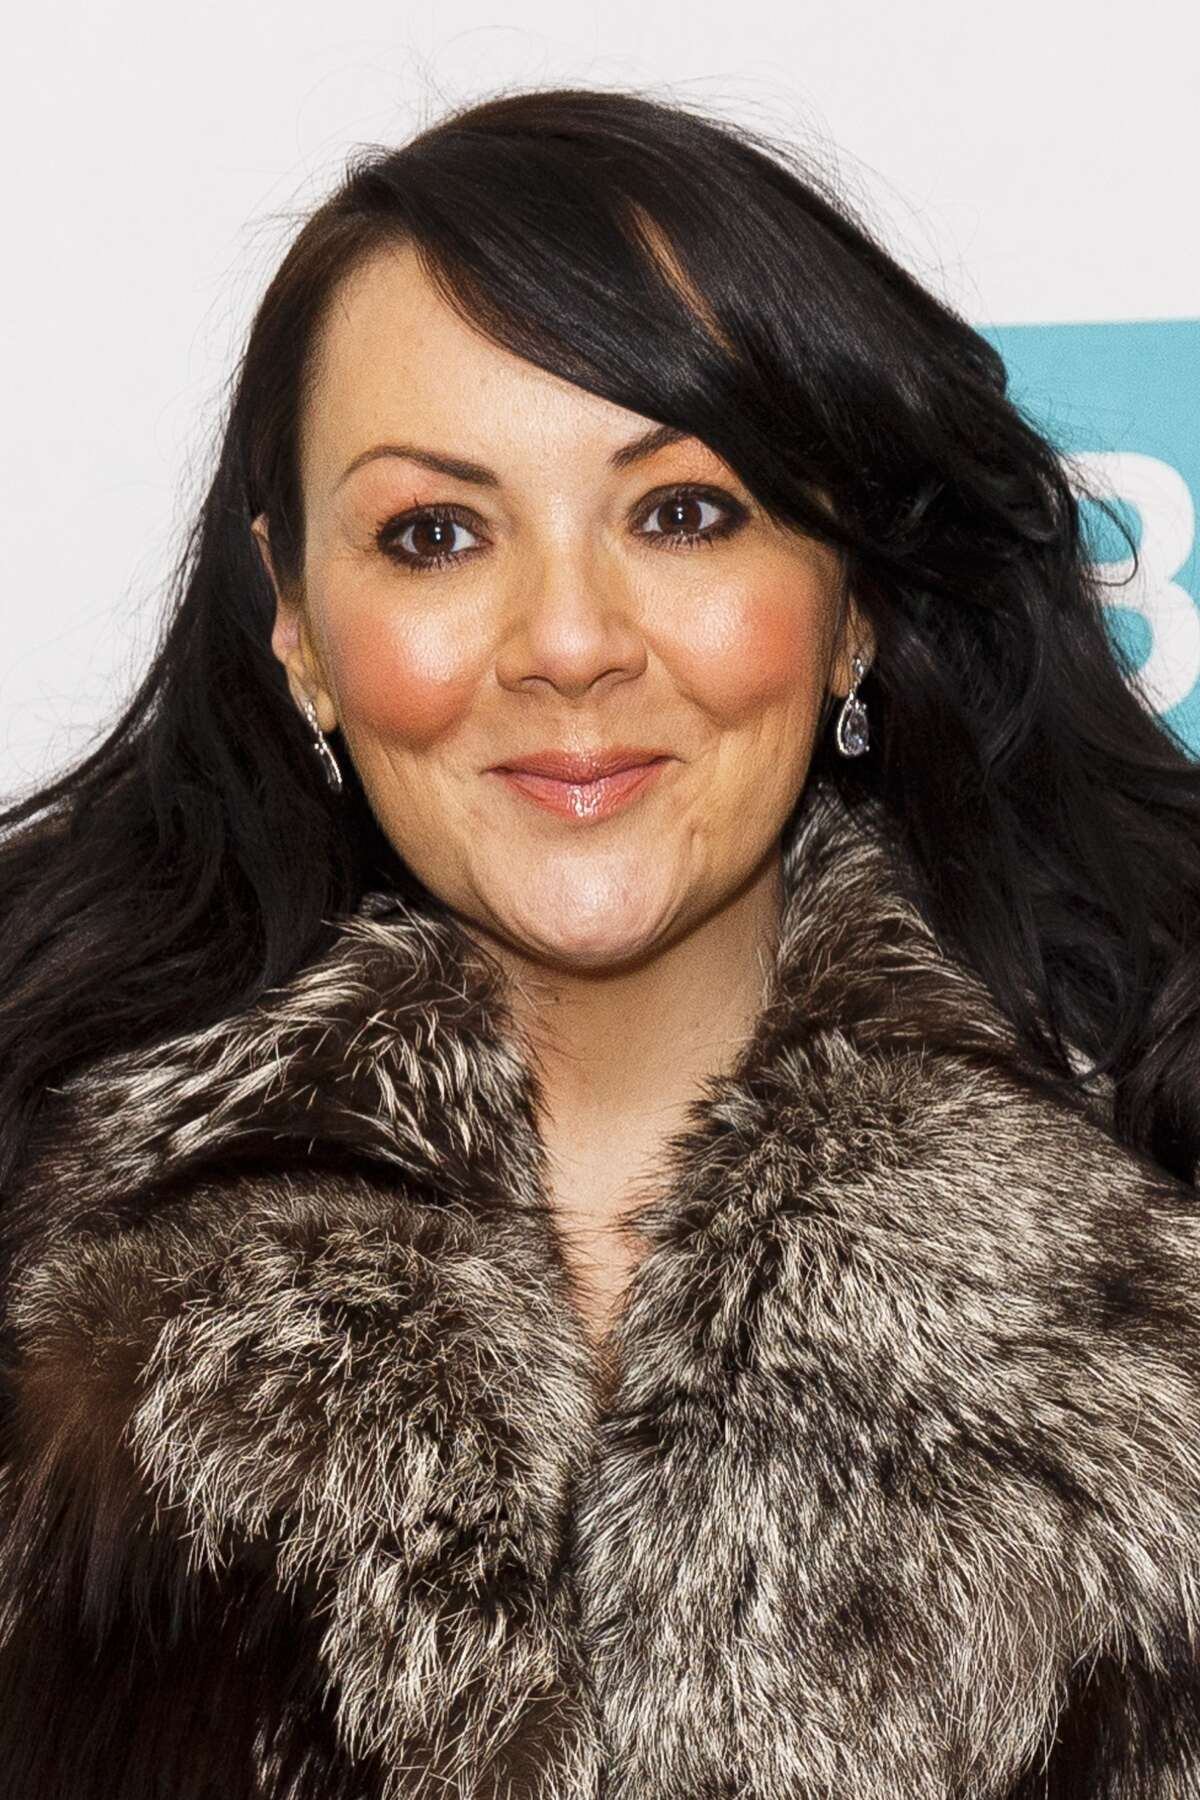 Martine McCutcheon played the Prime Minister's assistant-turned-love-interest Natalie.